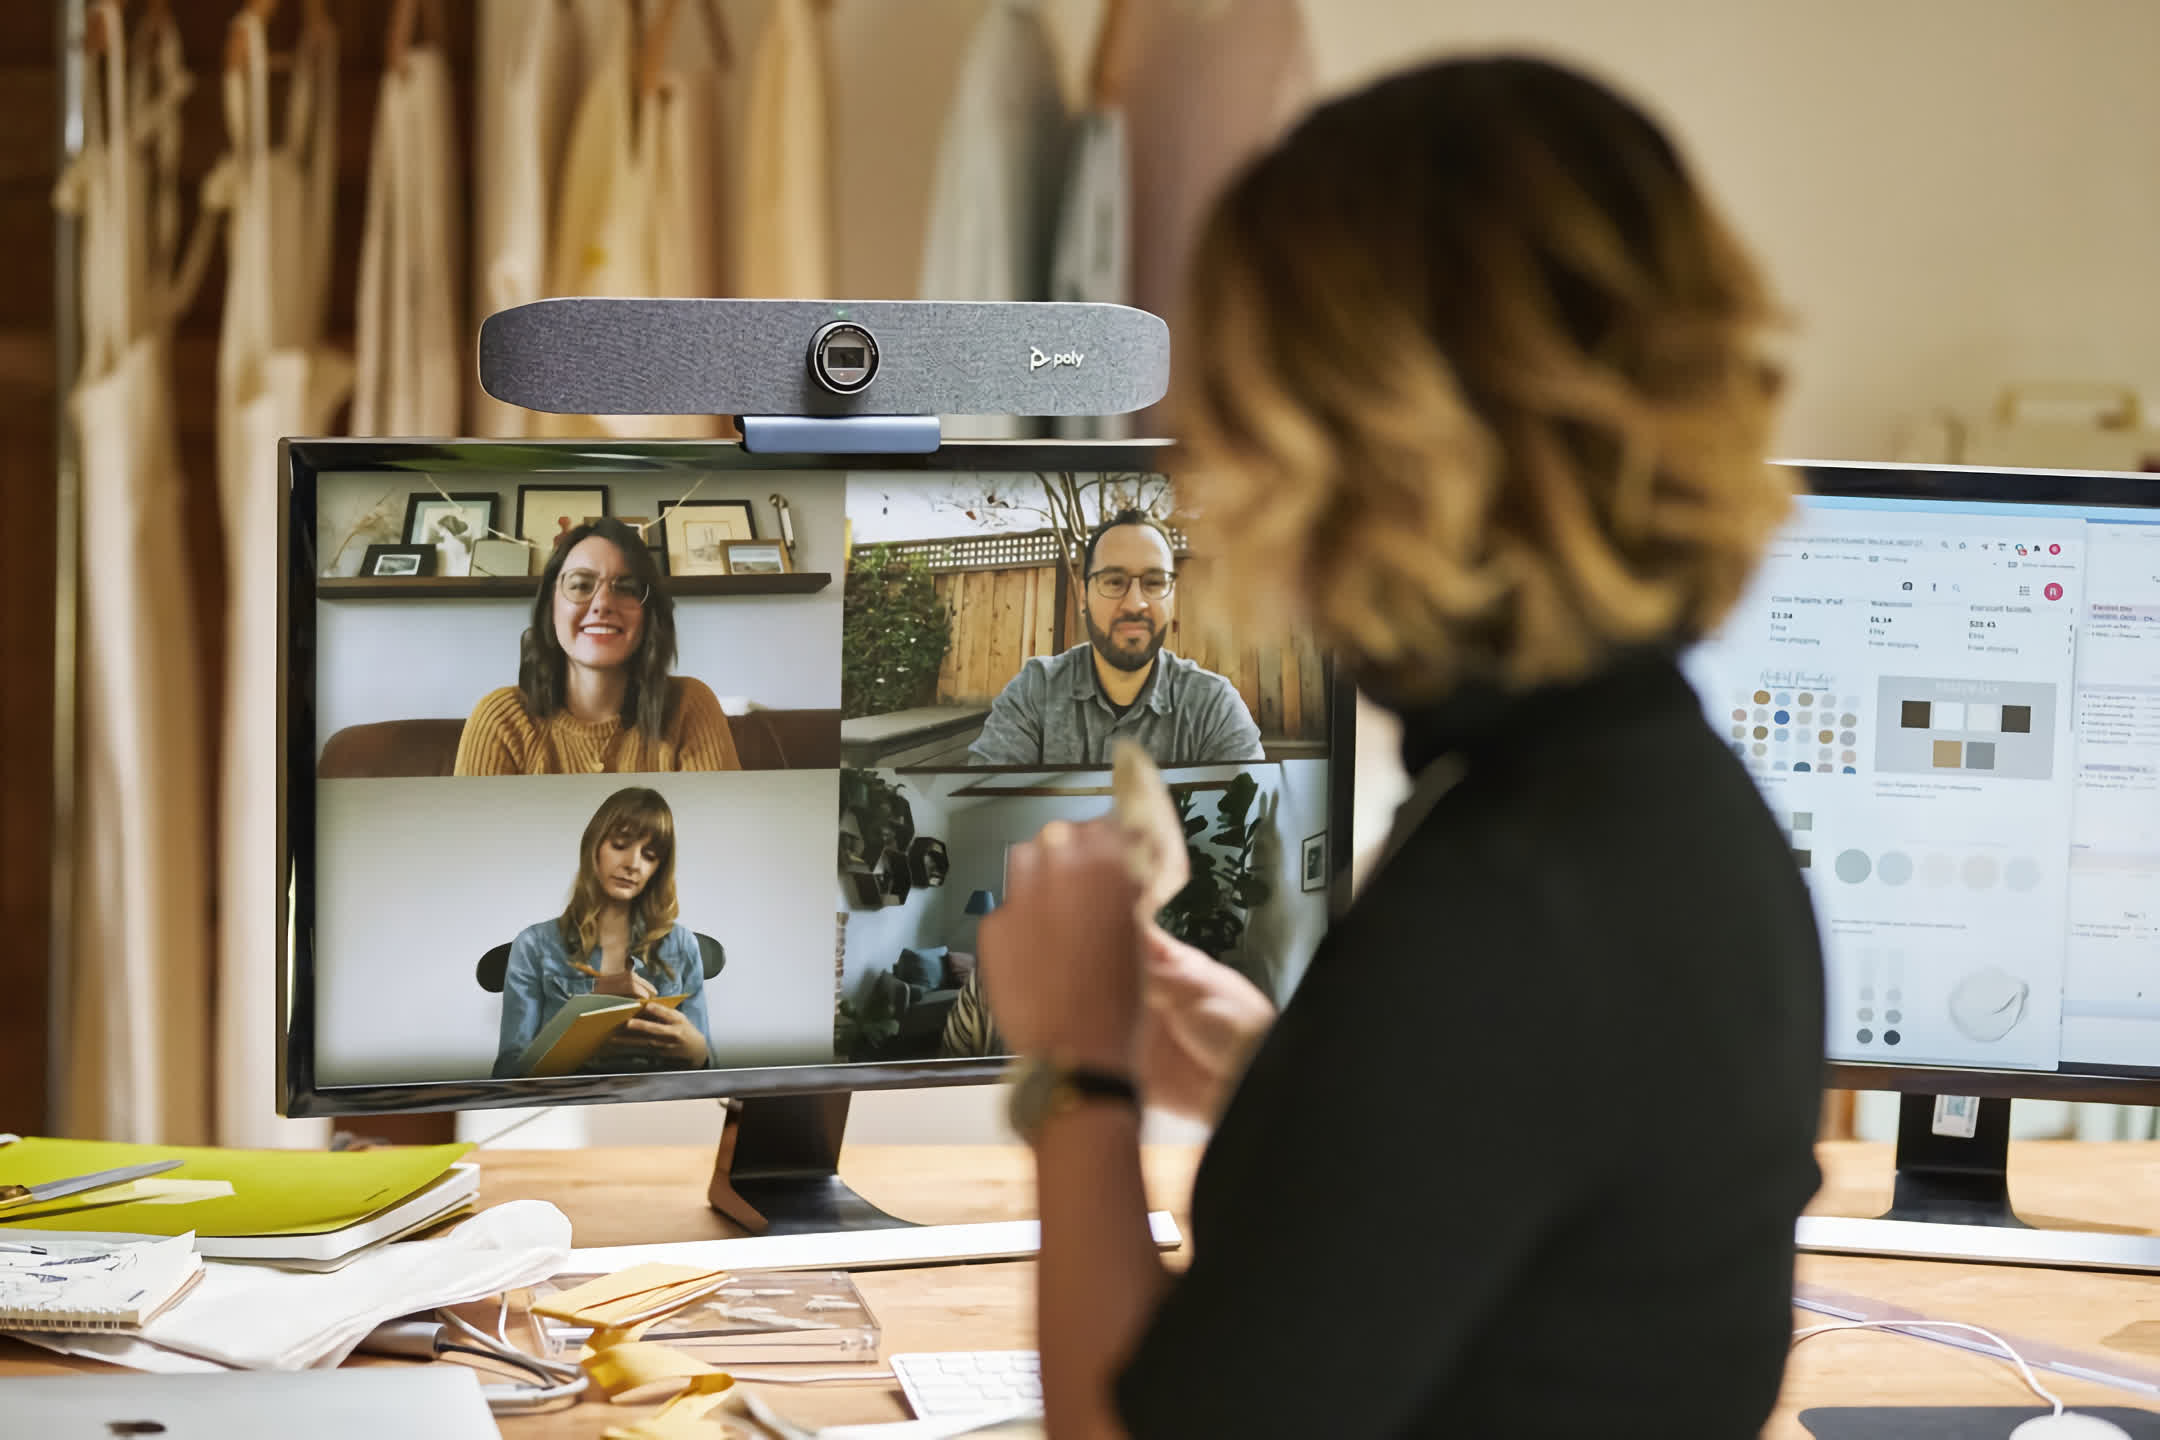 Poly shows off high-res webcams, video conferencing monitor, and services